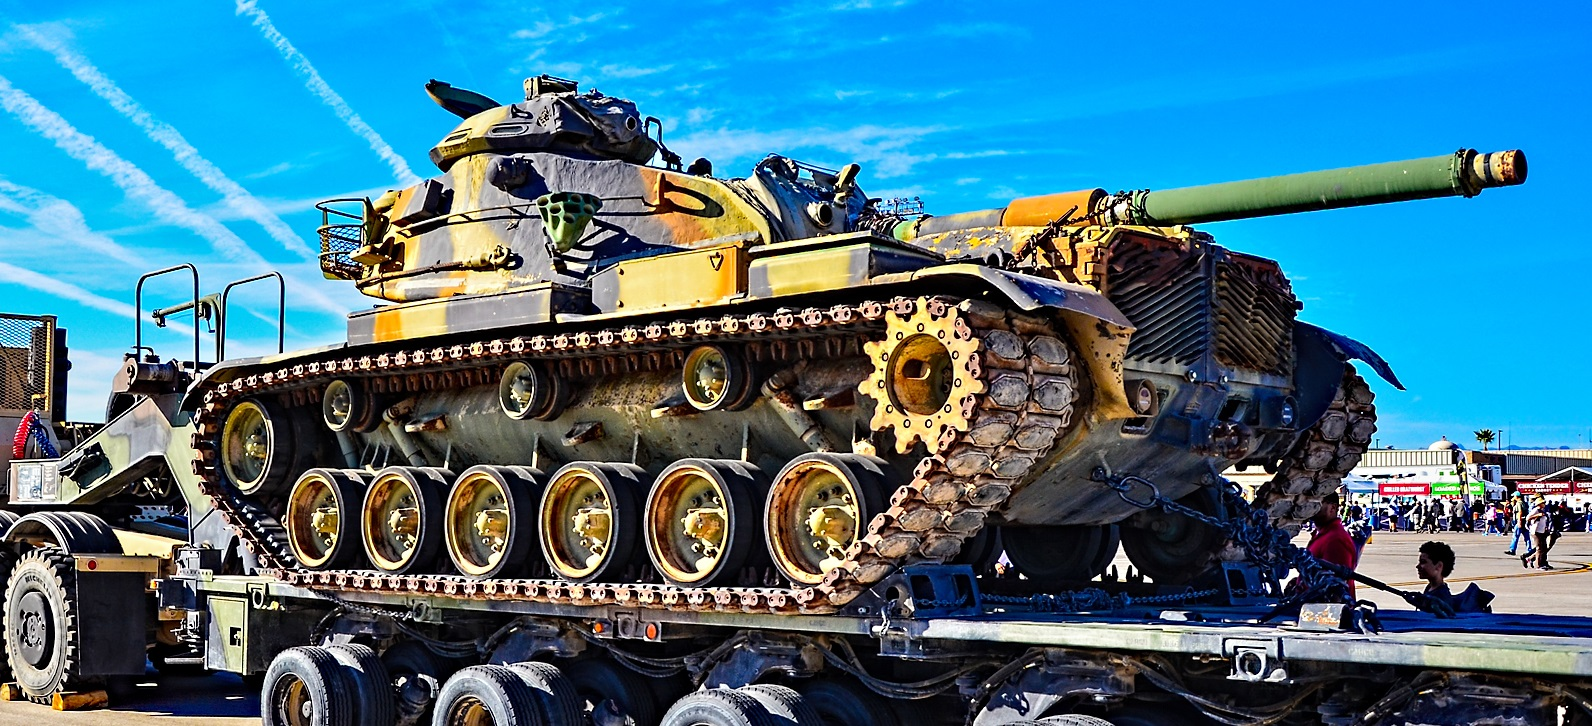 Meet the Patton: Why the M60 Tank Is Still A Killer After Decades on the Battlefield